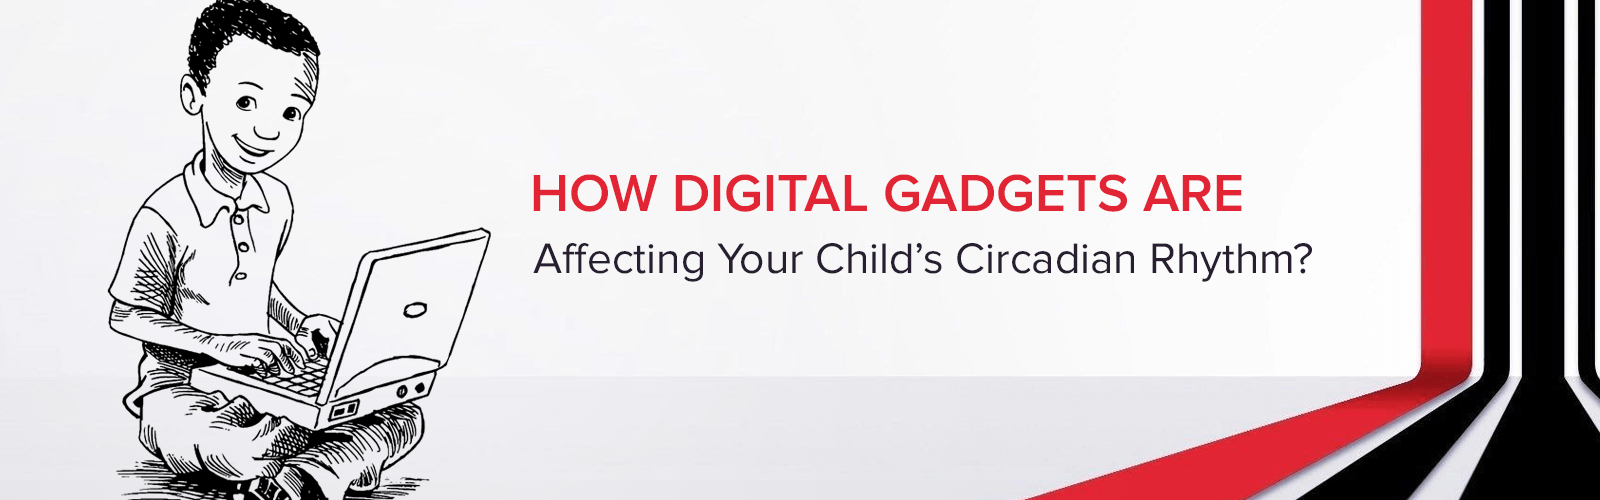 How Digital Gadgets Are Affecting Your Child's Circadian Rhythm?